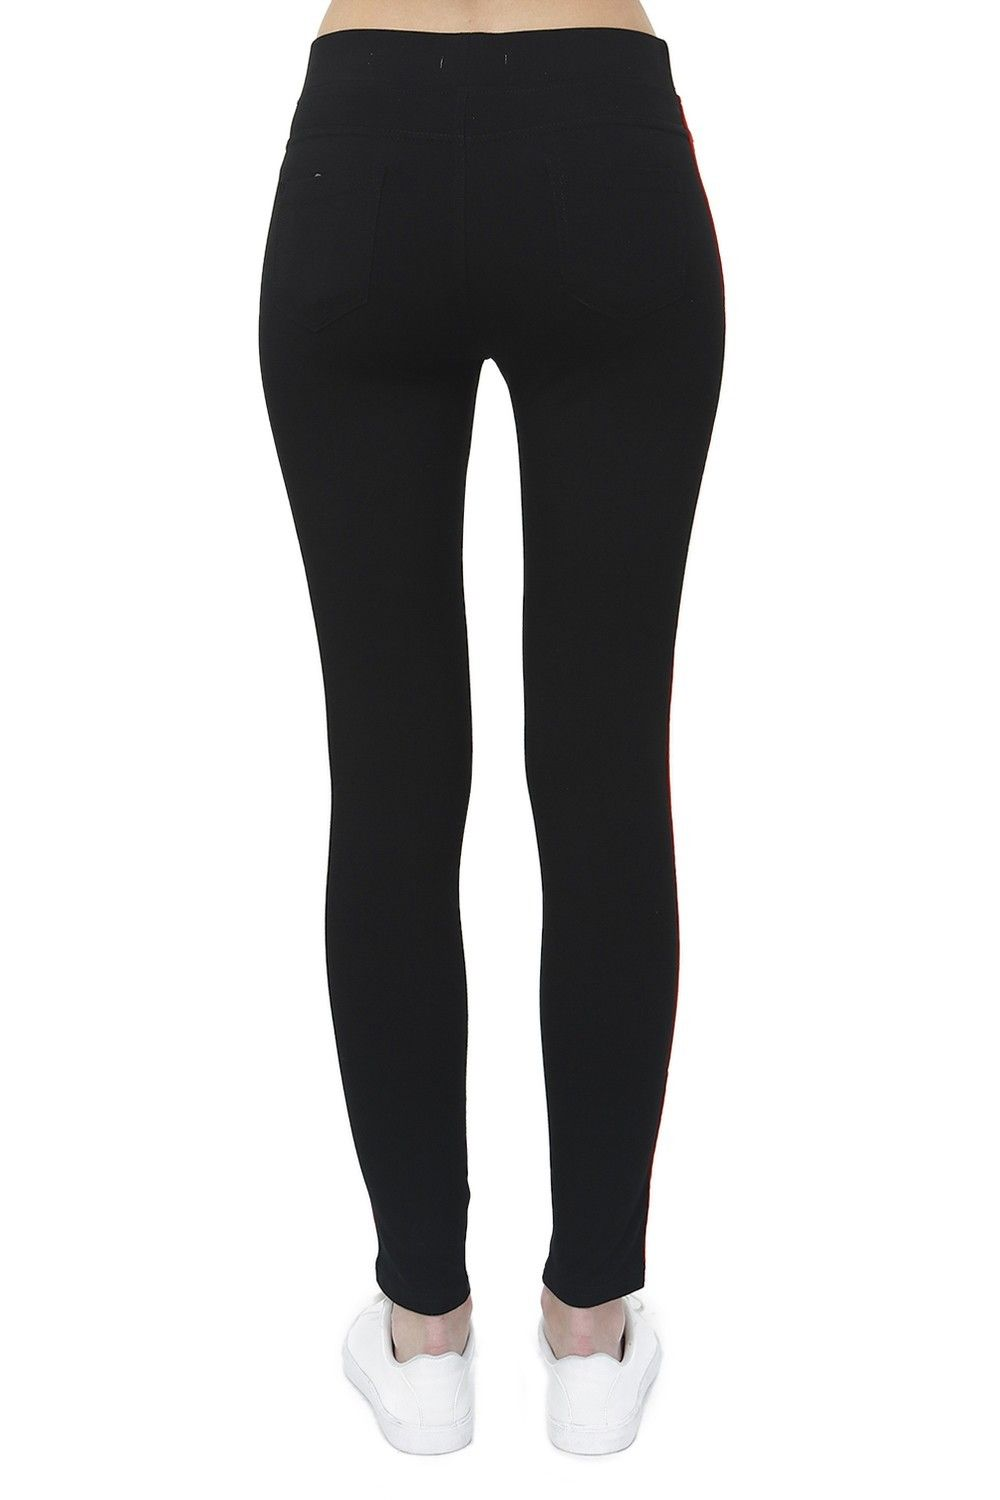 Assuili Two-tone Side Stripe Leggings in Black